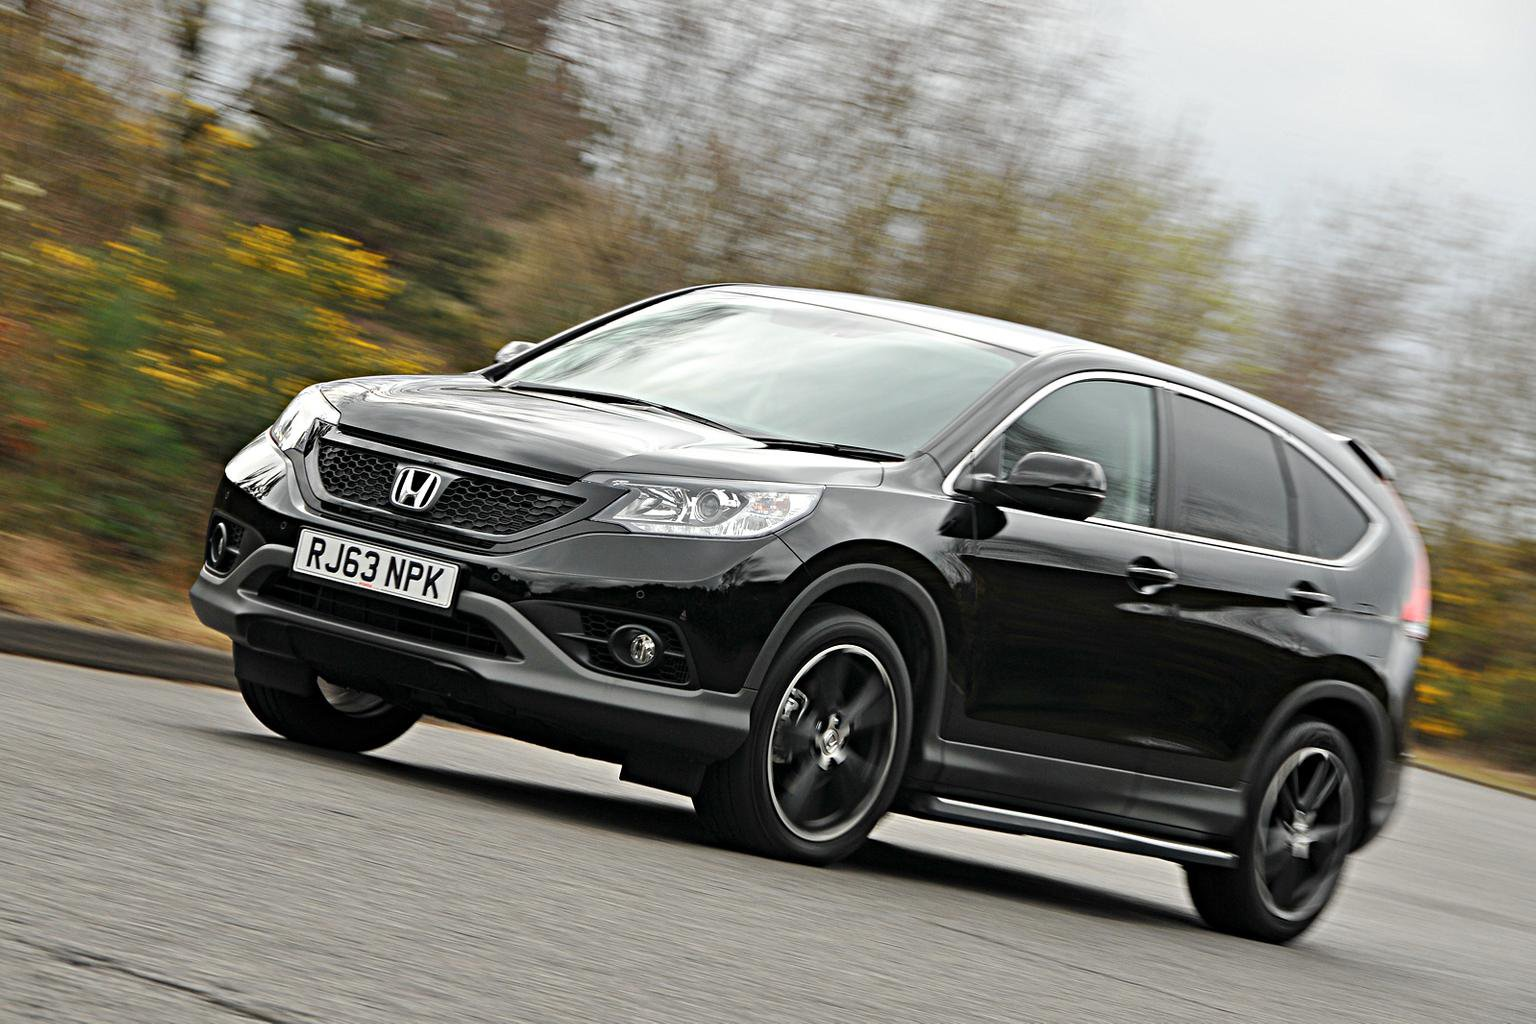 2014 Honda CR-V 2.2 i-DTEC Black review